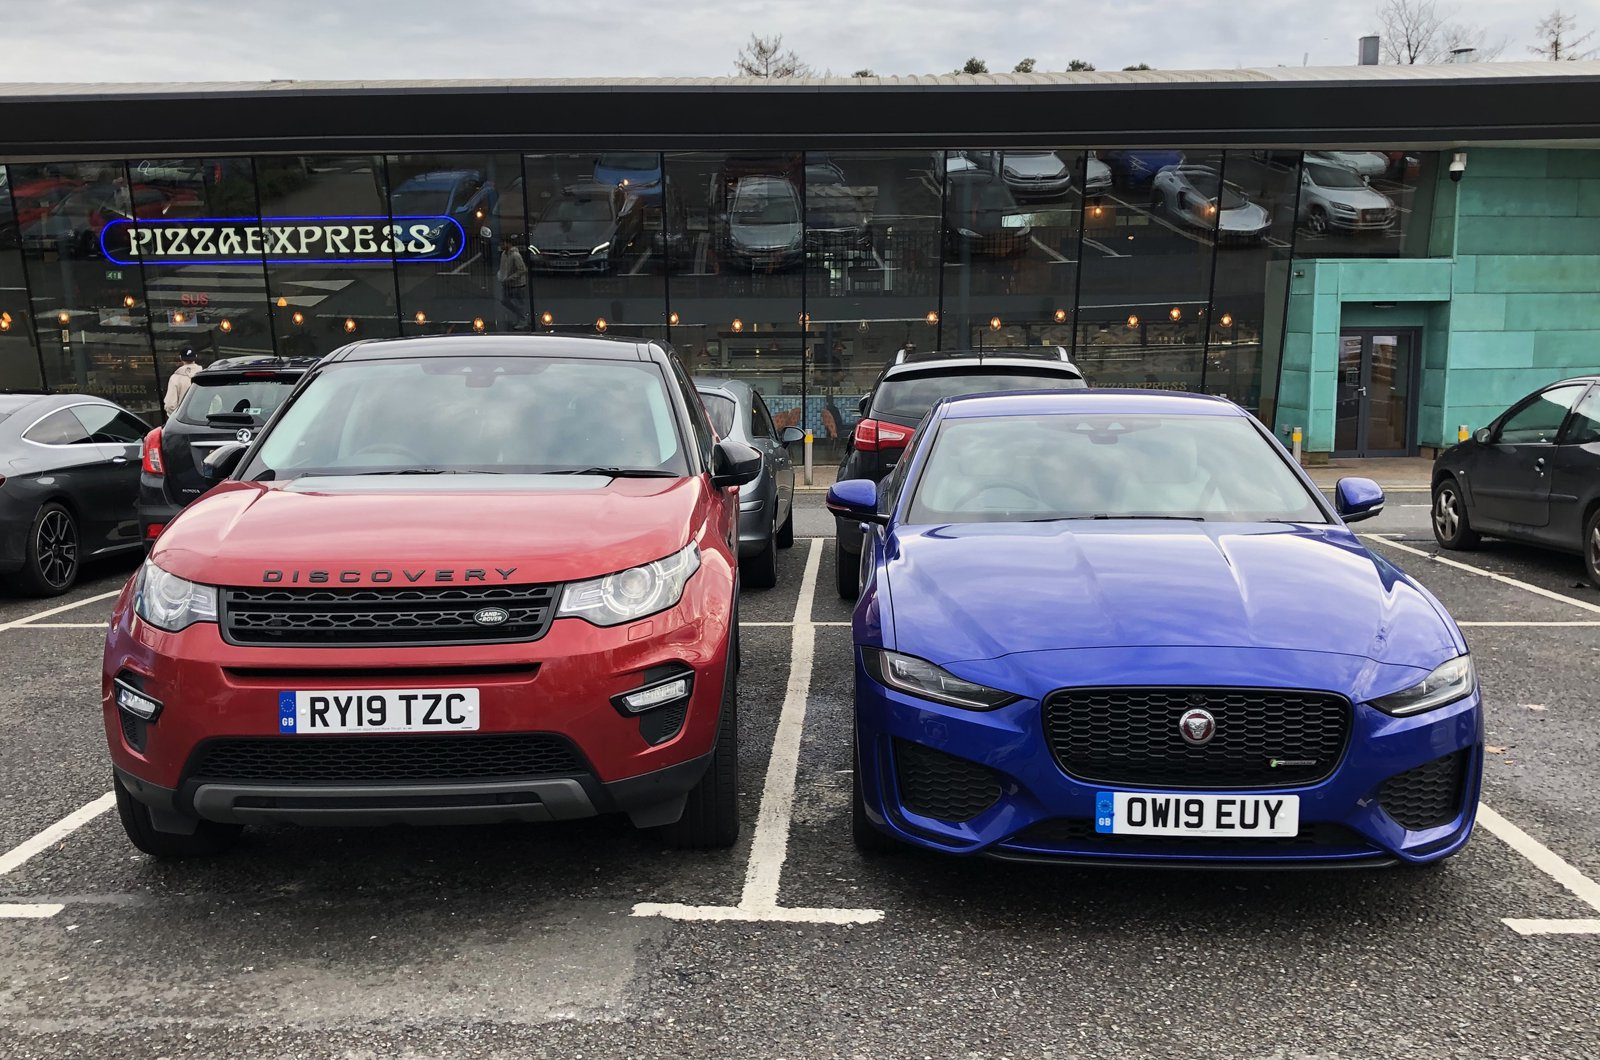 LT Jaguar XE with Land Rover Discovery Sport